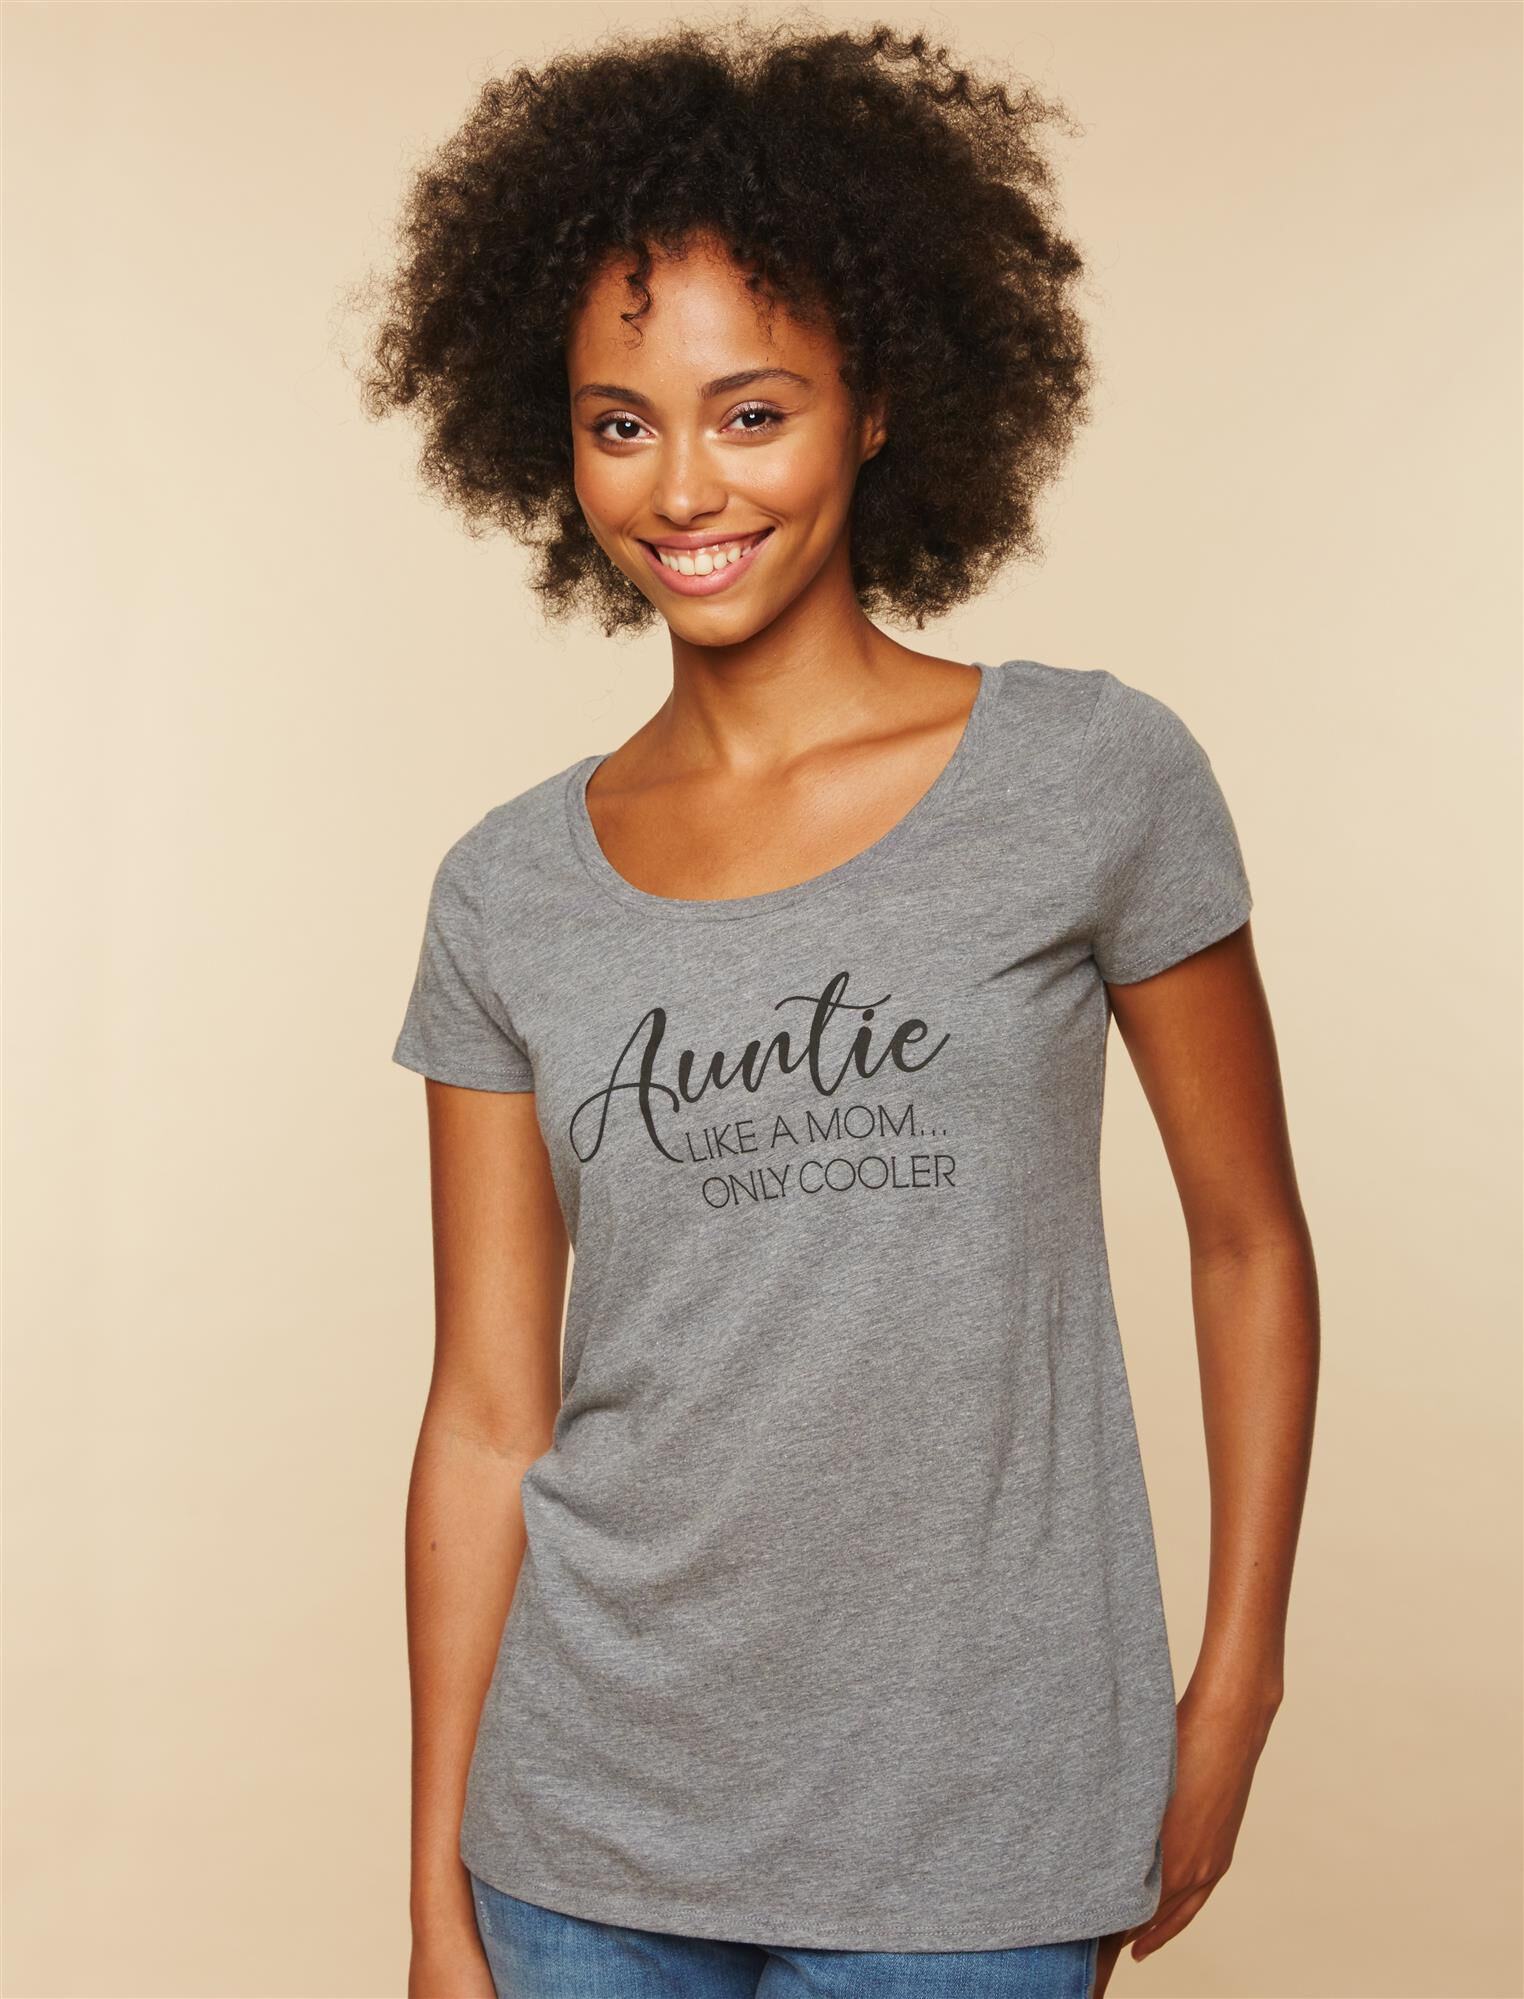 Auntie Like A Mom. Only Cooler Tee